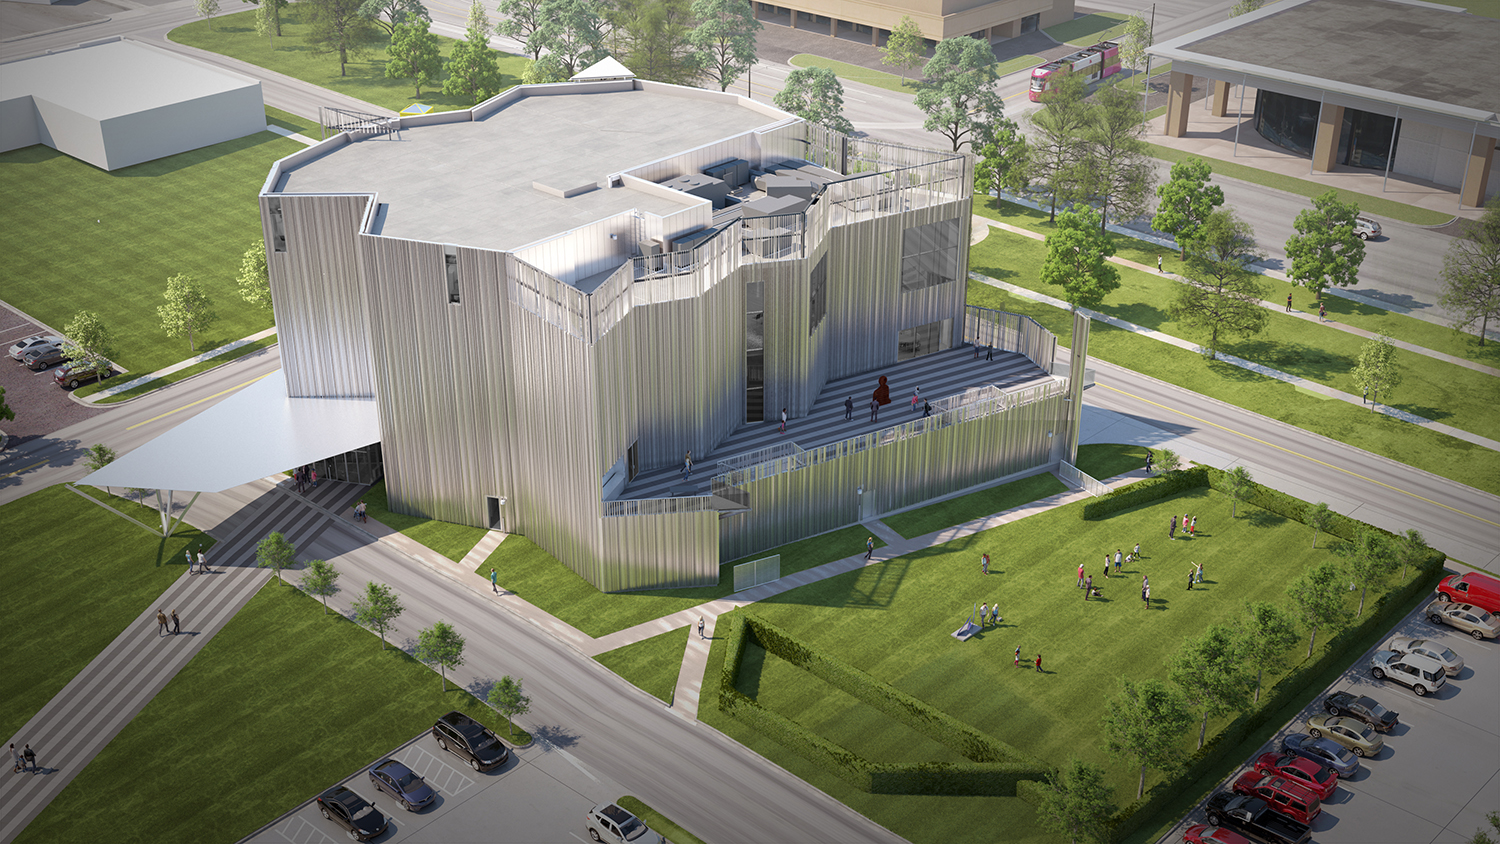 Rendering of a craggy building clad in metal panels, the new Oklahoma Contemporary Center for the Arts